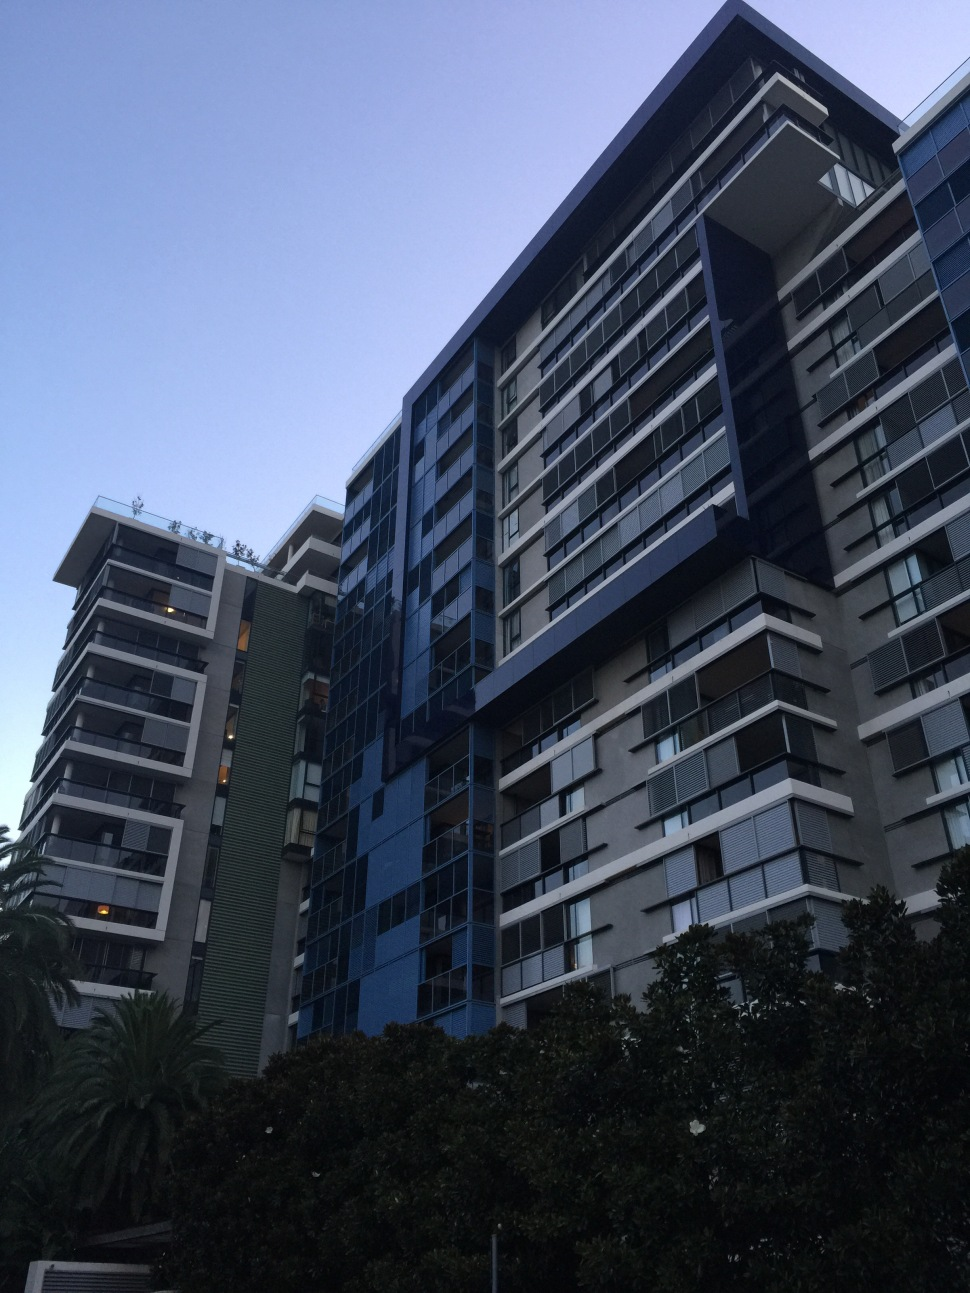 Trio apartments in Camperdown Sydney